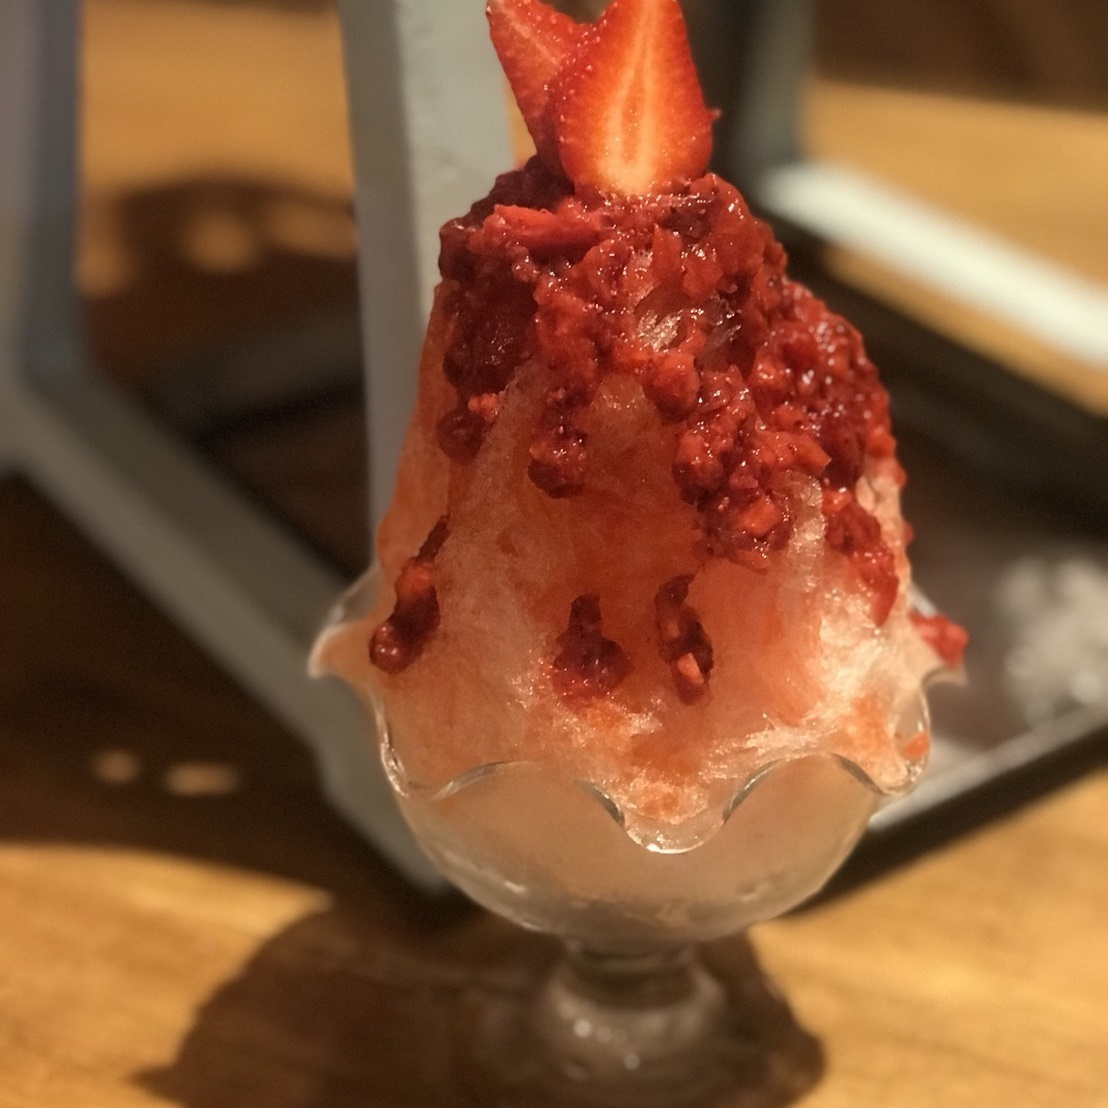 Shaved ice of raw strawberries